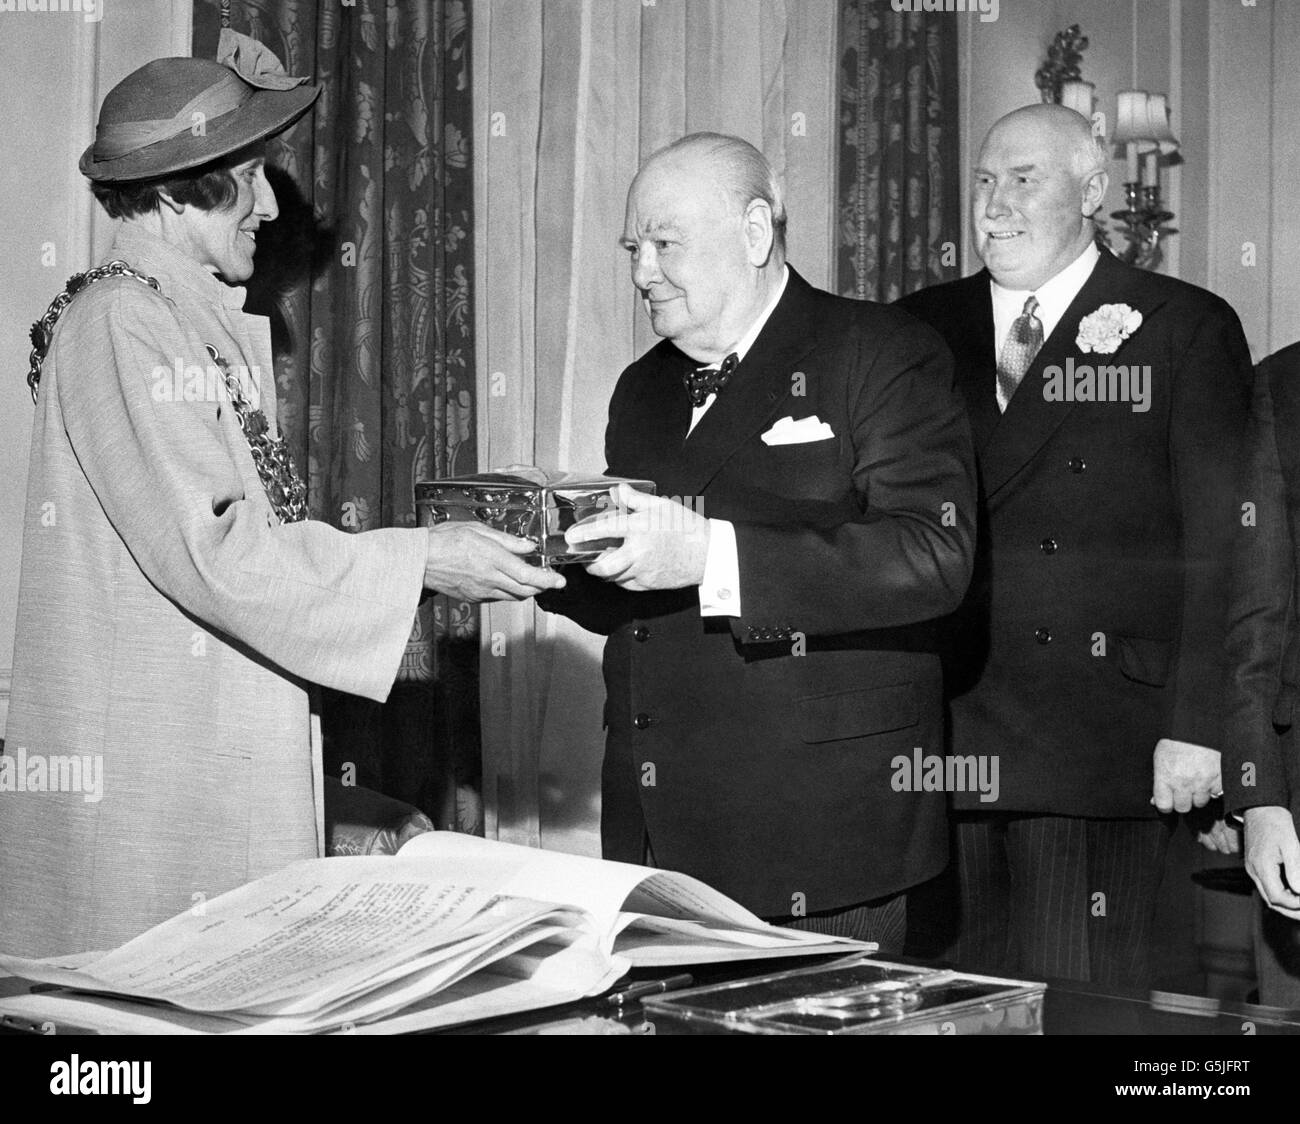 Sir Winston Churchill receives Freedom of Poole - 10 Downing Street - London - Stock Image